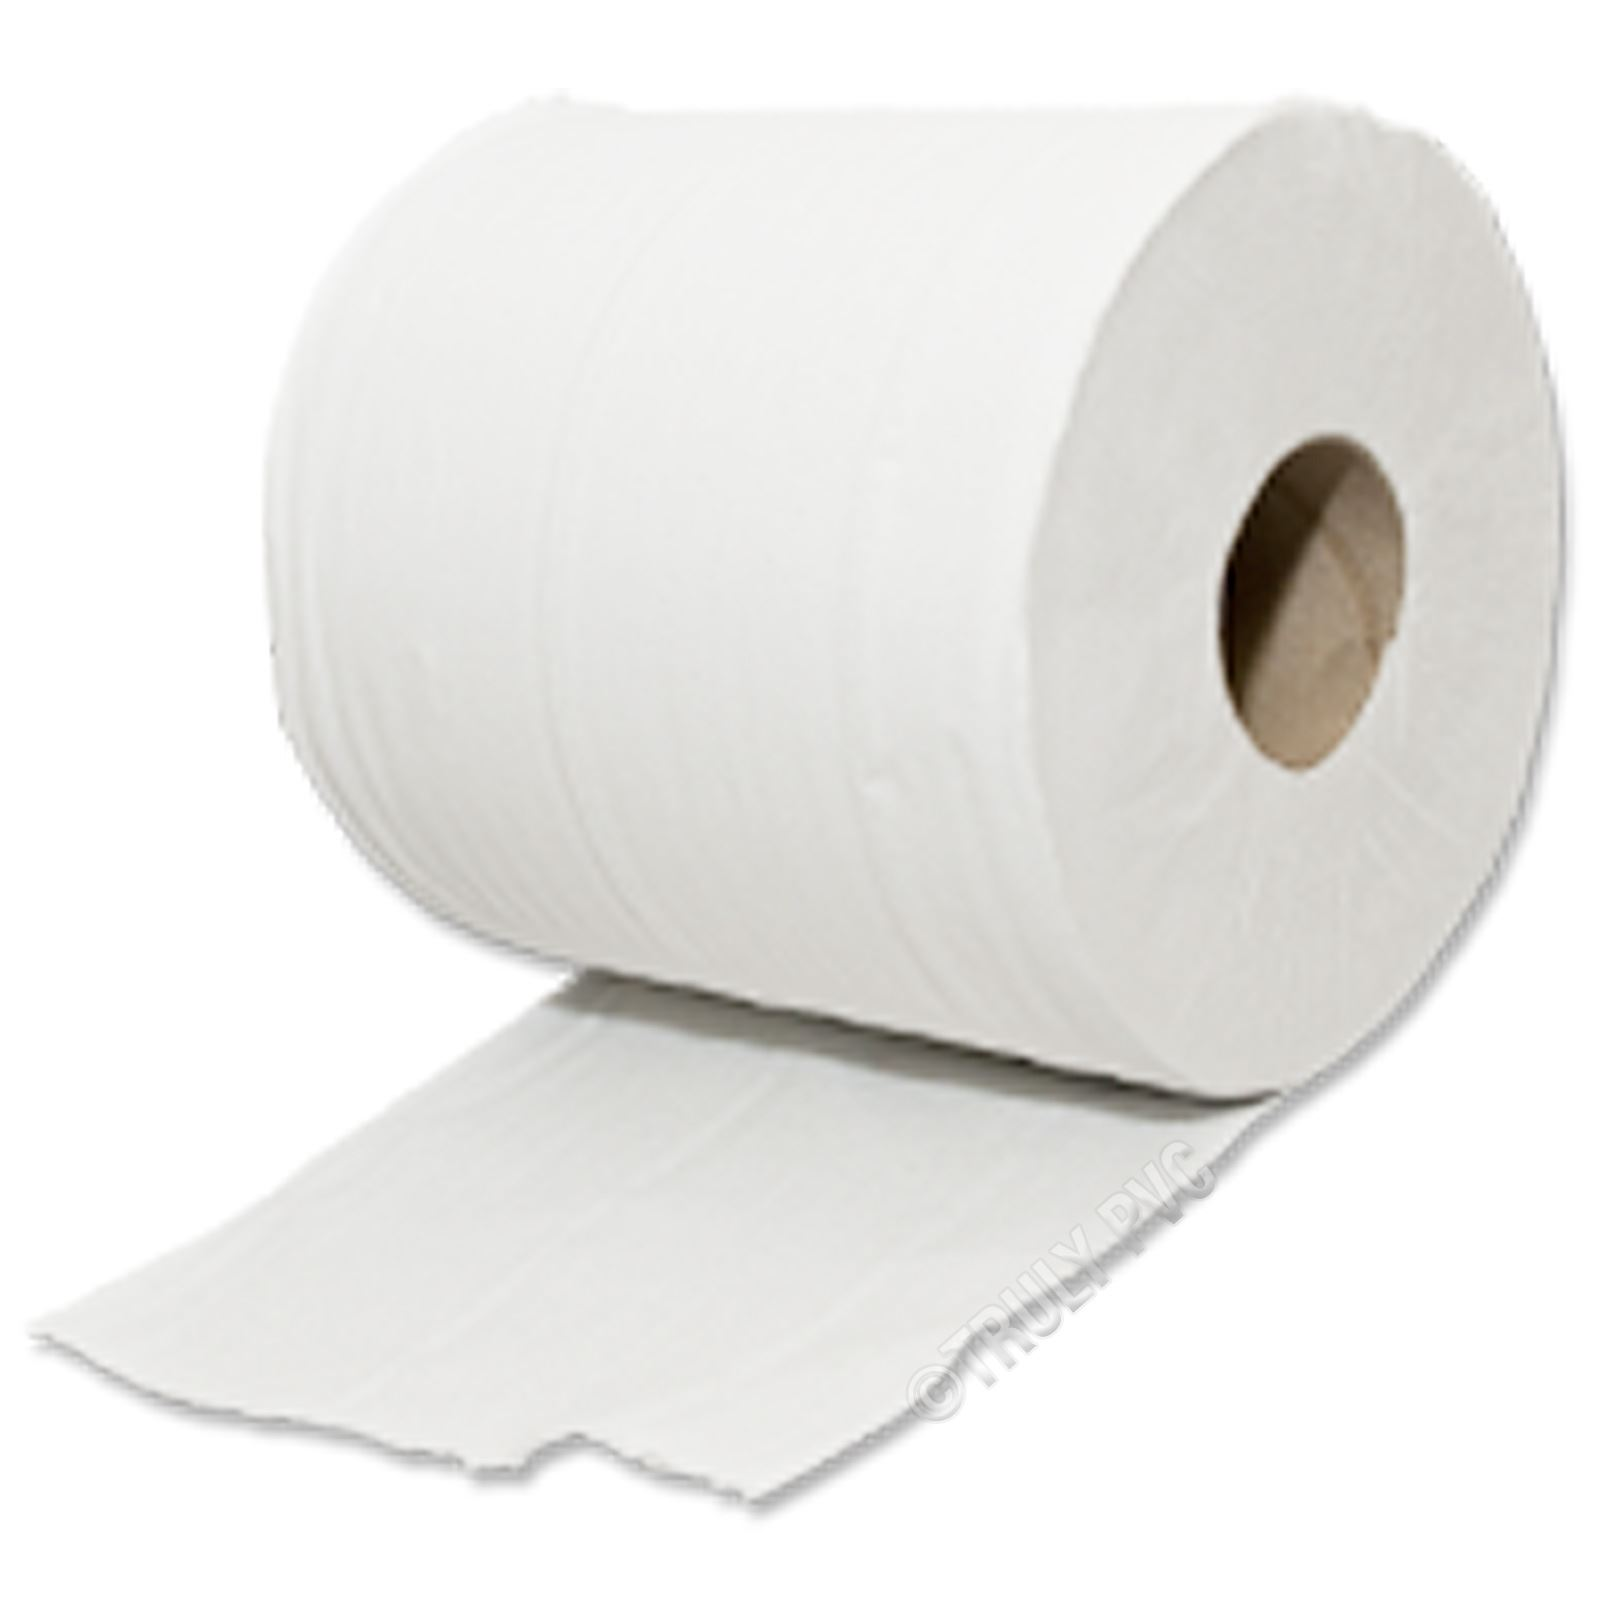 Lint Free Cleaning Tissue Truly Pvc